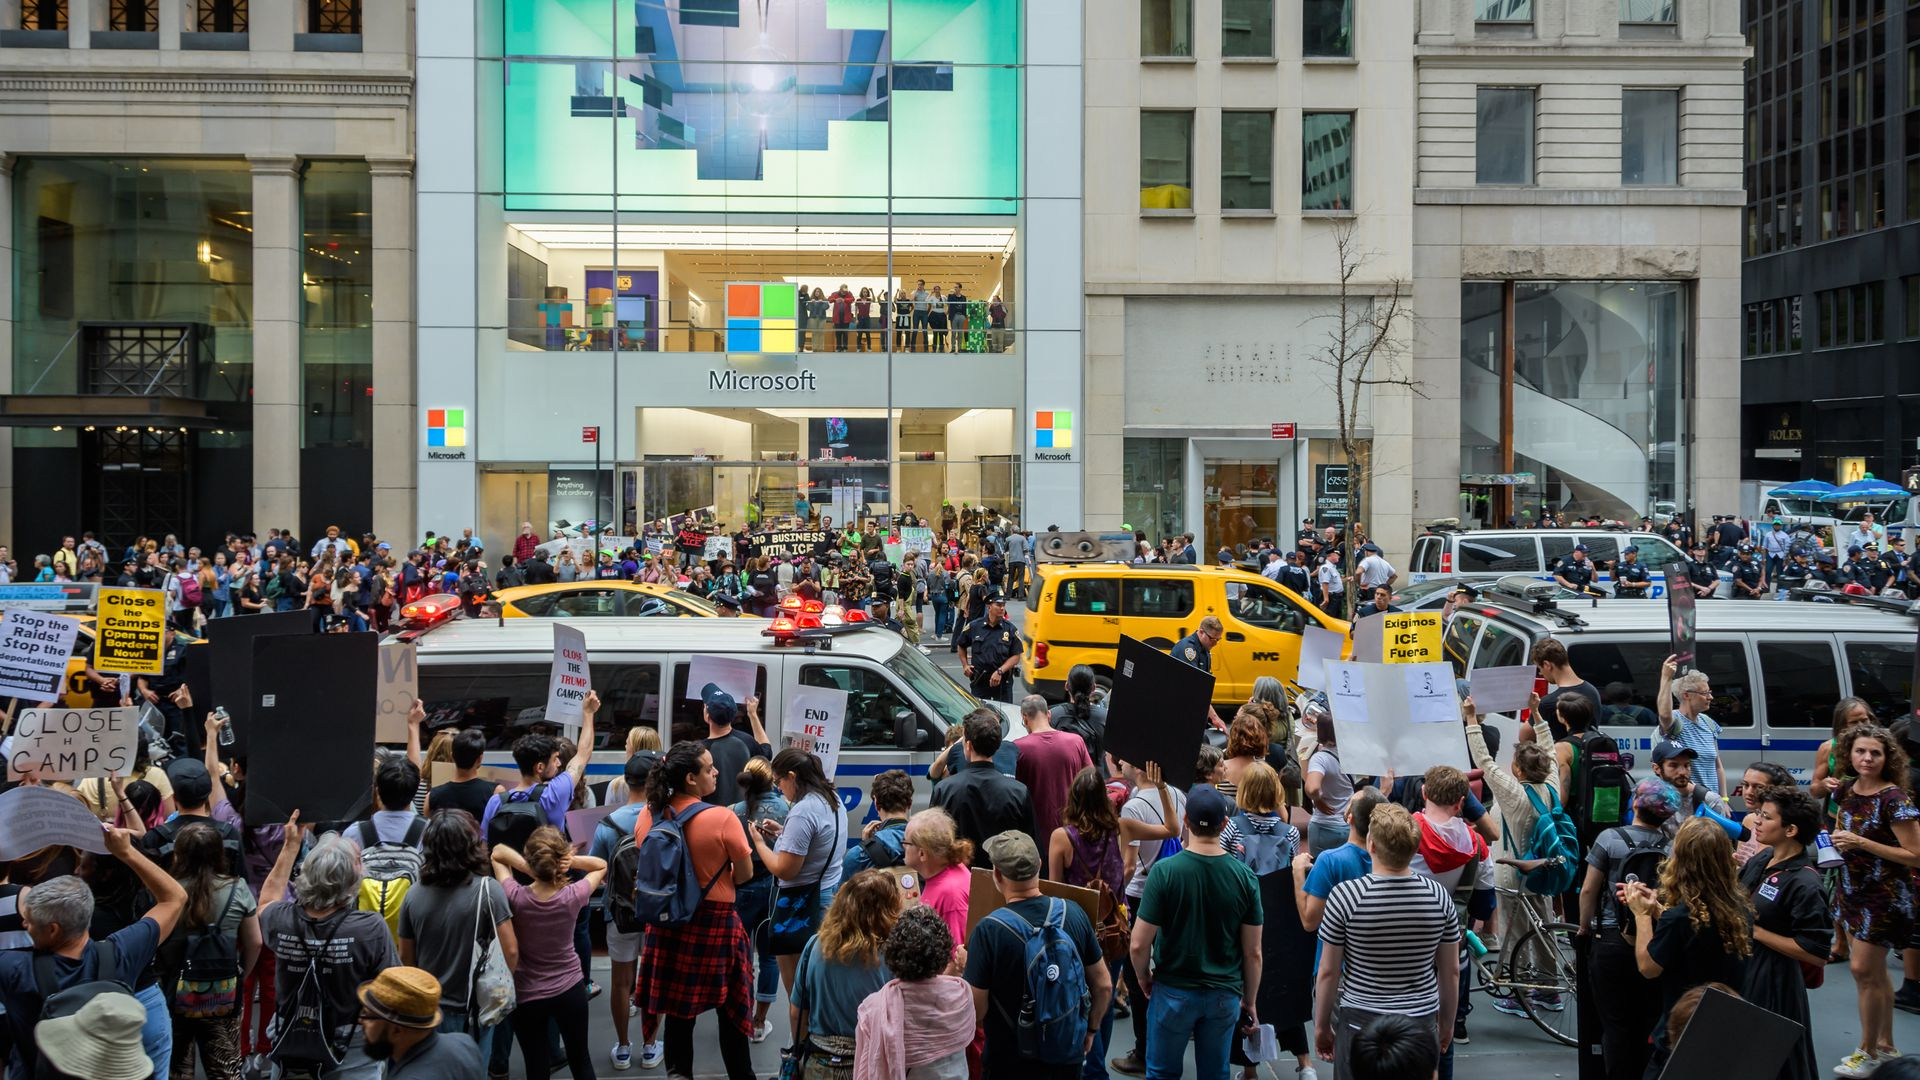 A total of 76 protesters were arrested after shutting down the Microsoft retail store in Manhattan and blocking traffic on Fifth Avenue on September 14